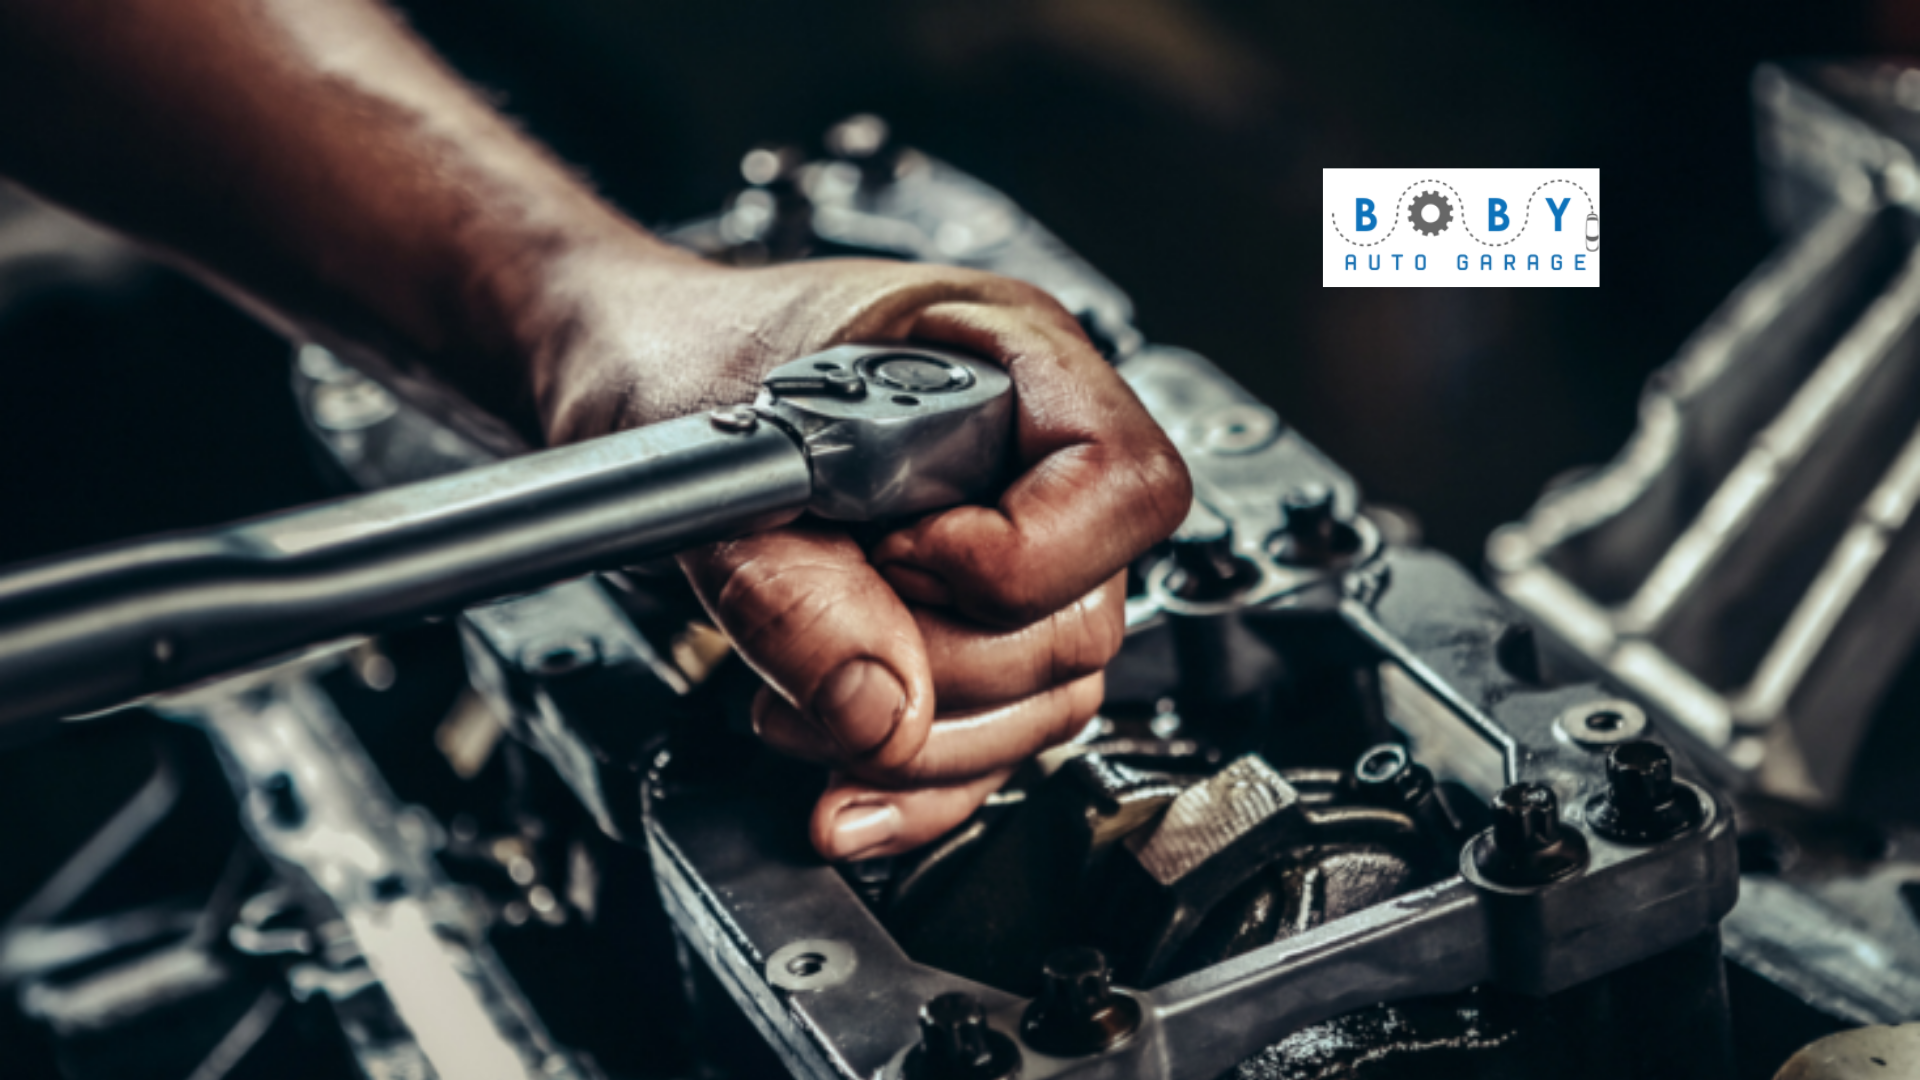 This image shows auto repair in Dubai